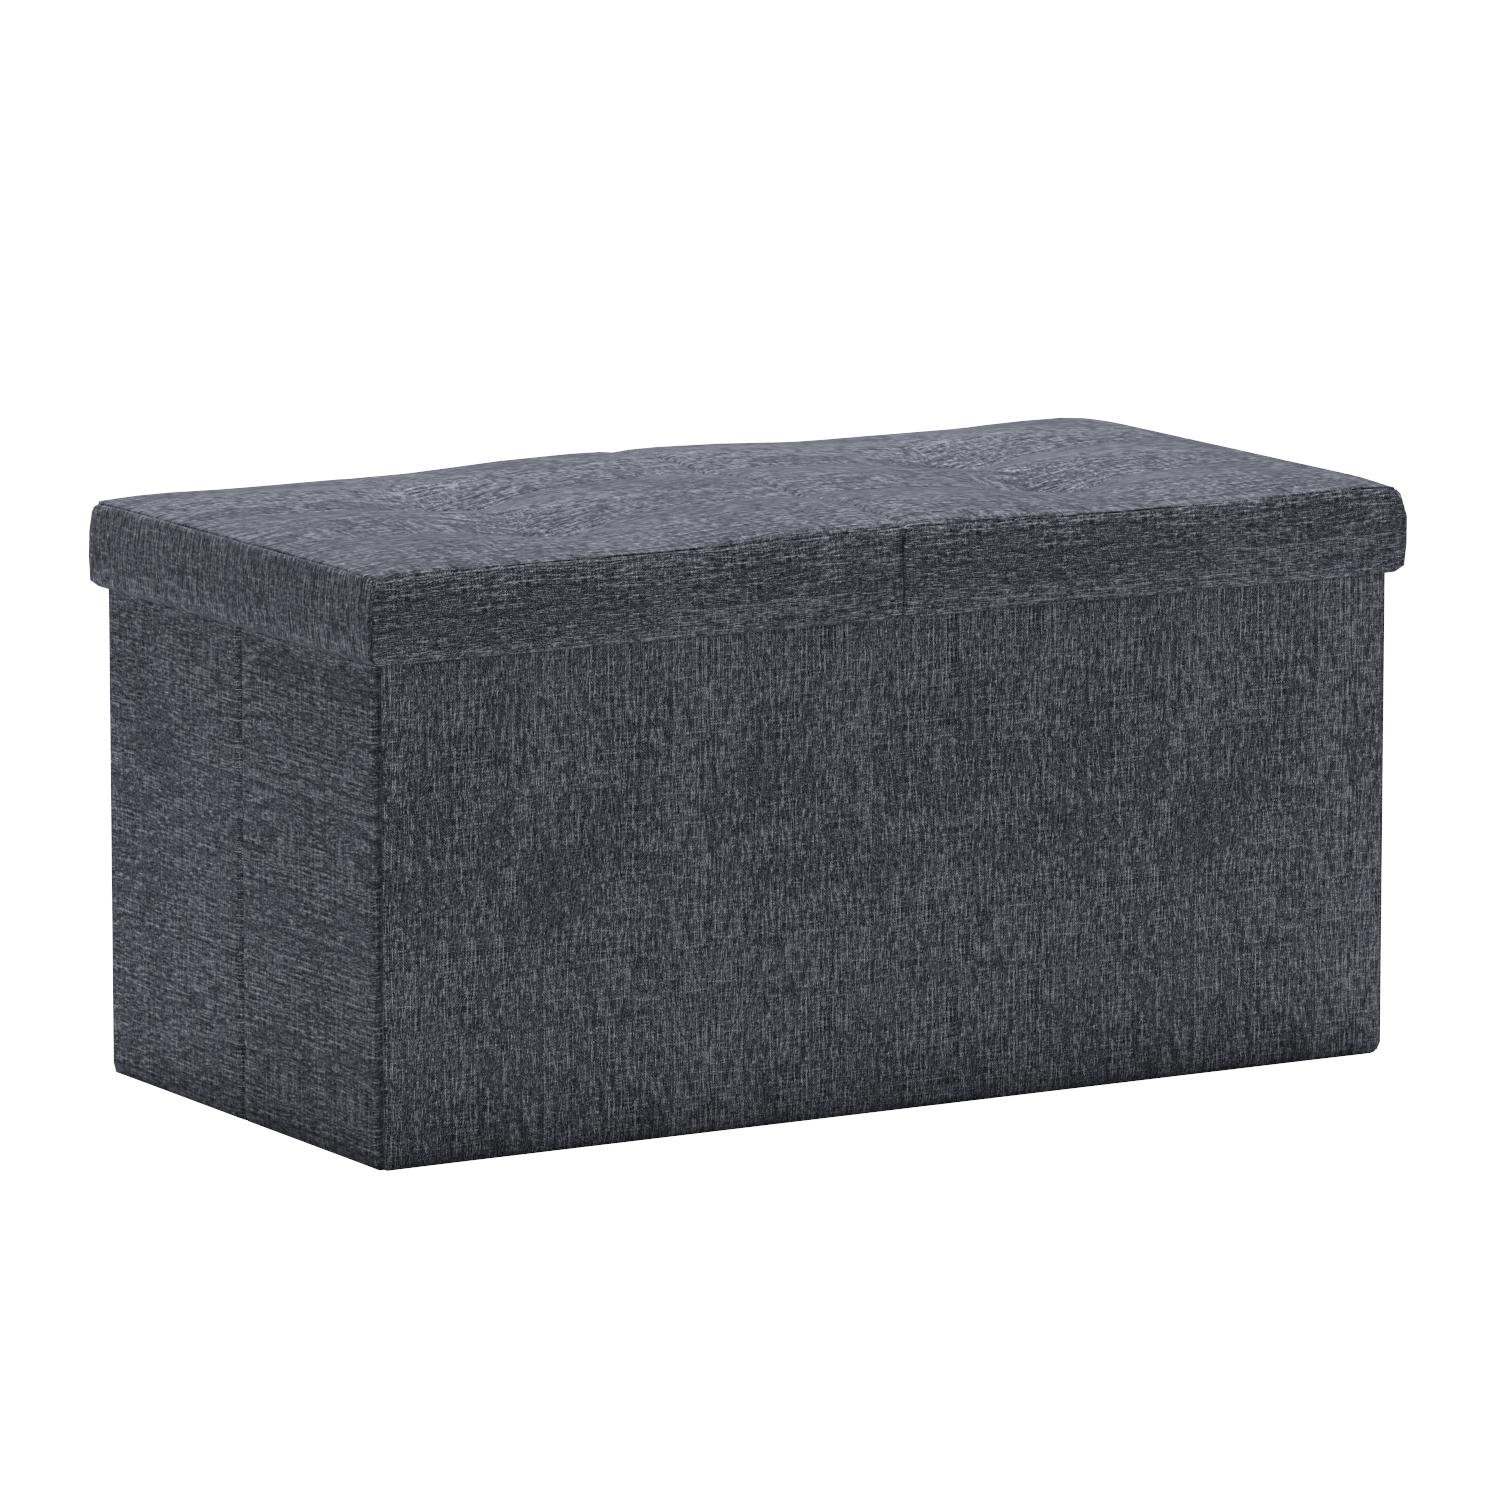 Otto & Ben 30'' Storage Ottoman - Folding Toy Box Chest with SMART LIFT Top, Linen Fabric Ottomans Bench Foot Rest for Bedroom, Dark Grey